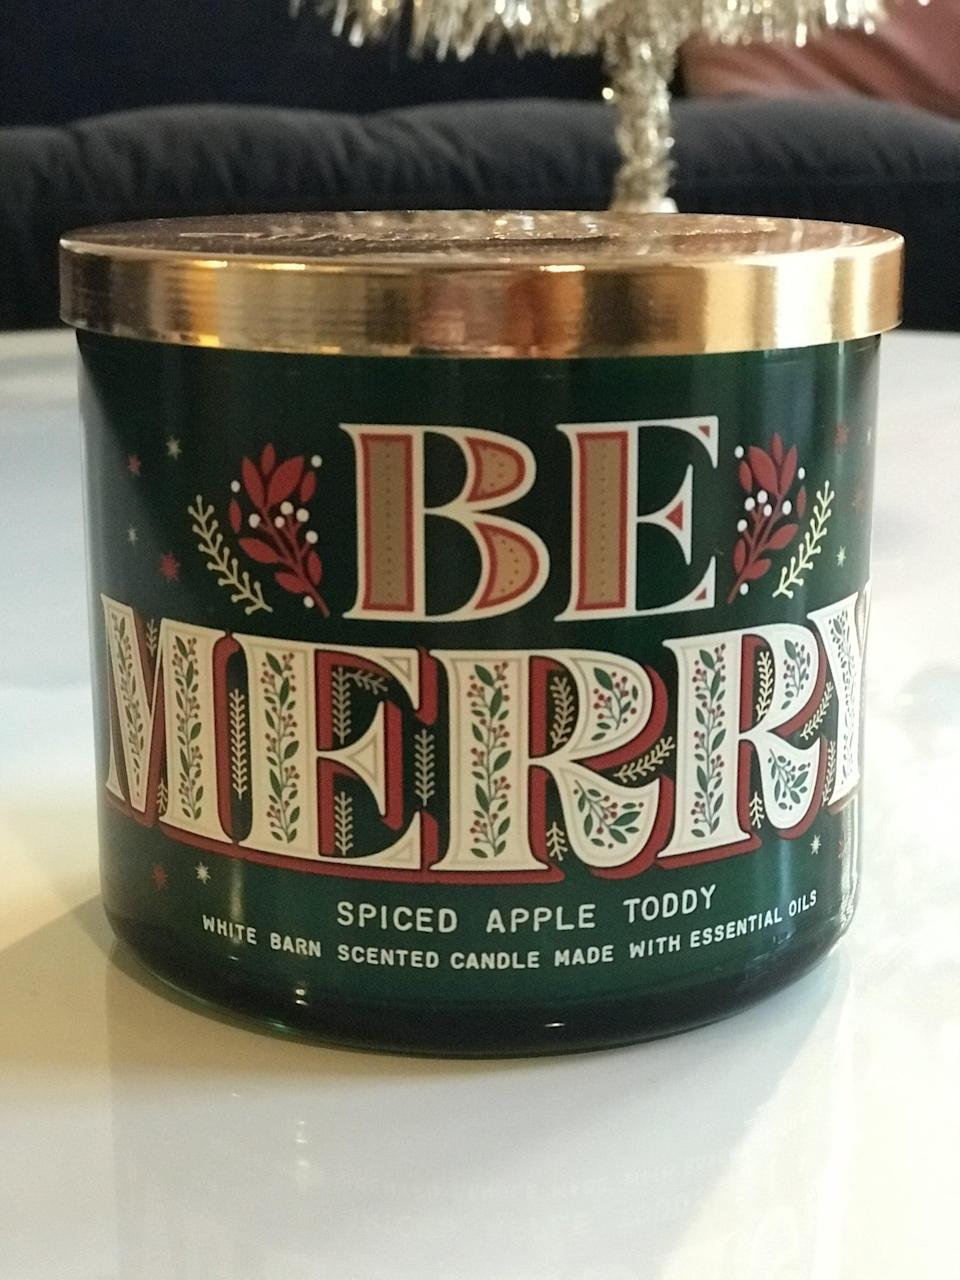 <p><span>Spiced Apple Toddy 3-Wick Candle</span> ($15, originally $25)</p> <p><strong>What It Smells Like:</strong> Sipping on the tastiest hot spiced cocktail while wrapped up in a blanket.</p>